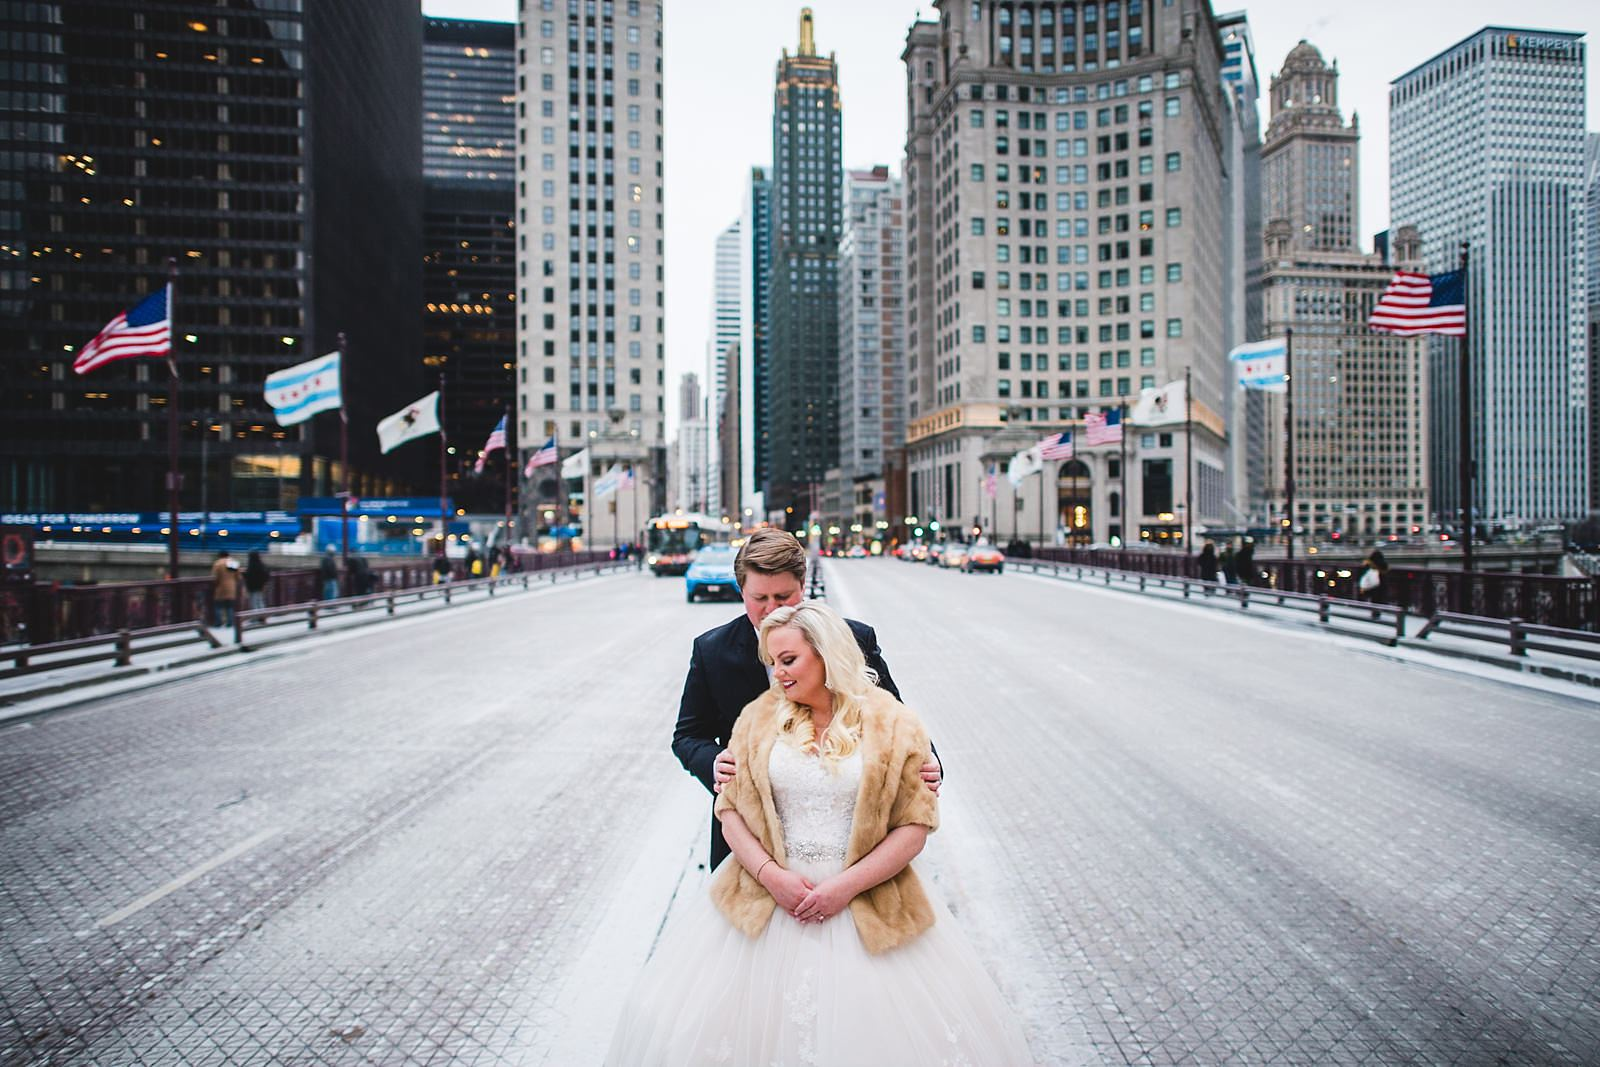 15 chiago wedding photos - Drake Chicago Luxury Wedding Photography // Kate + Royce